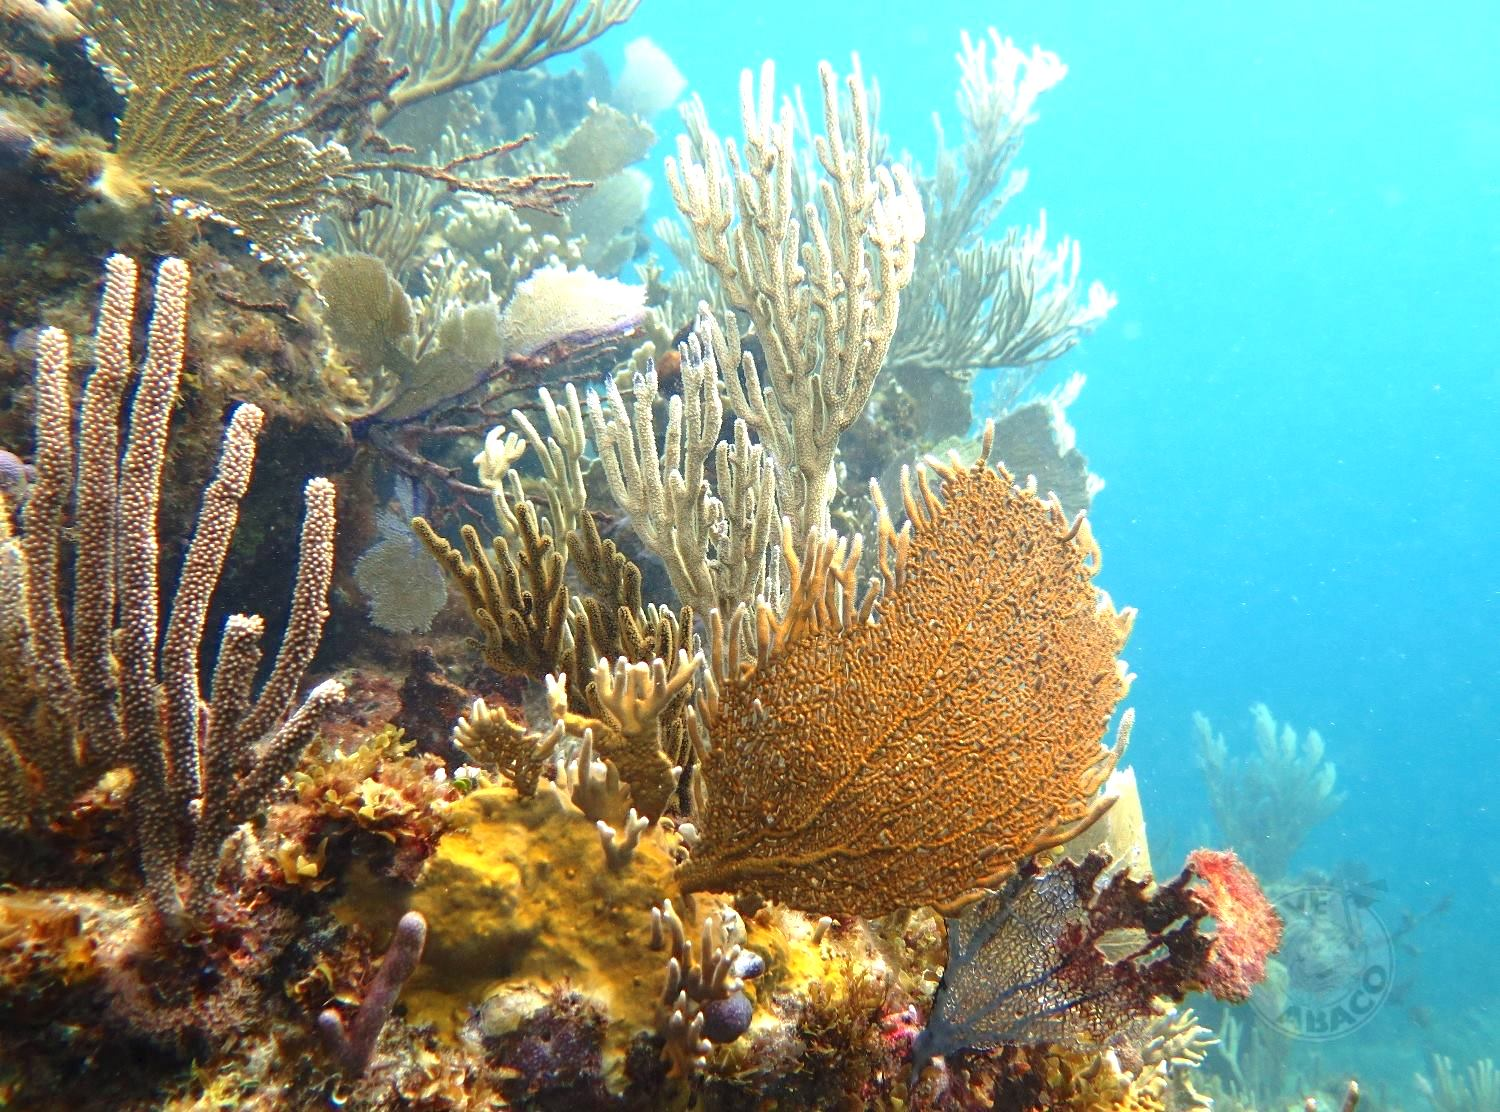 Reef Coral Abaco Bahamas (Melinda Rodgers / Dive Abaco)